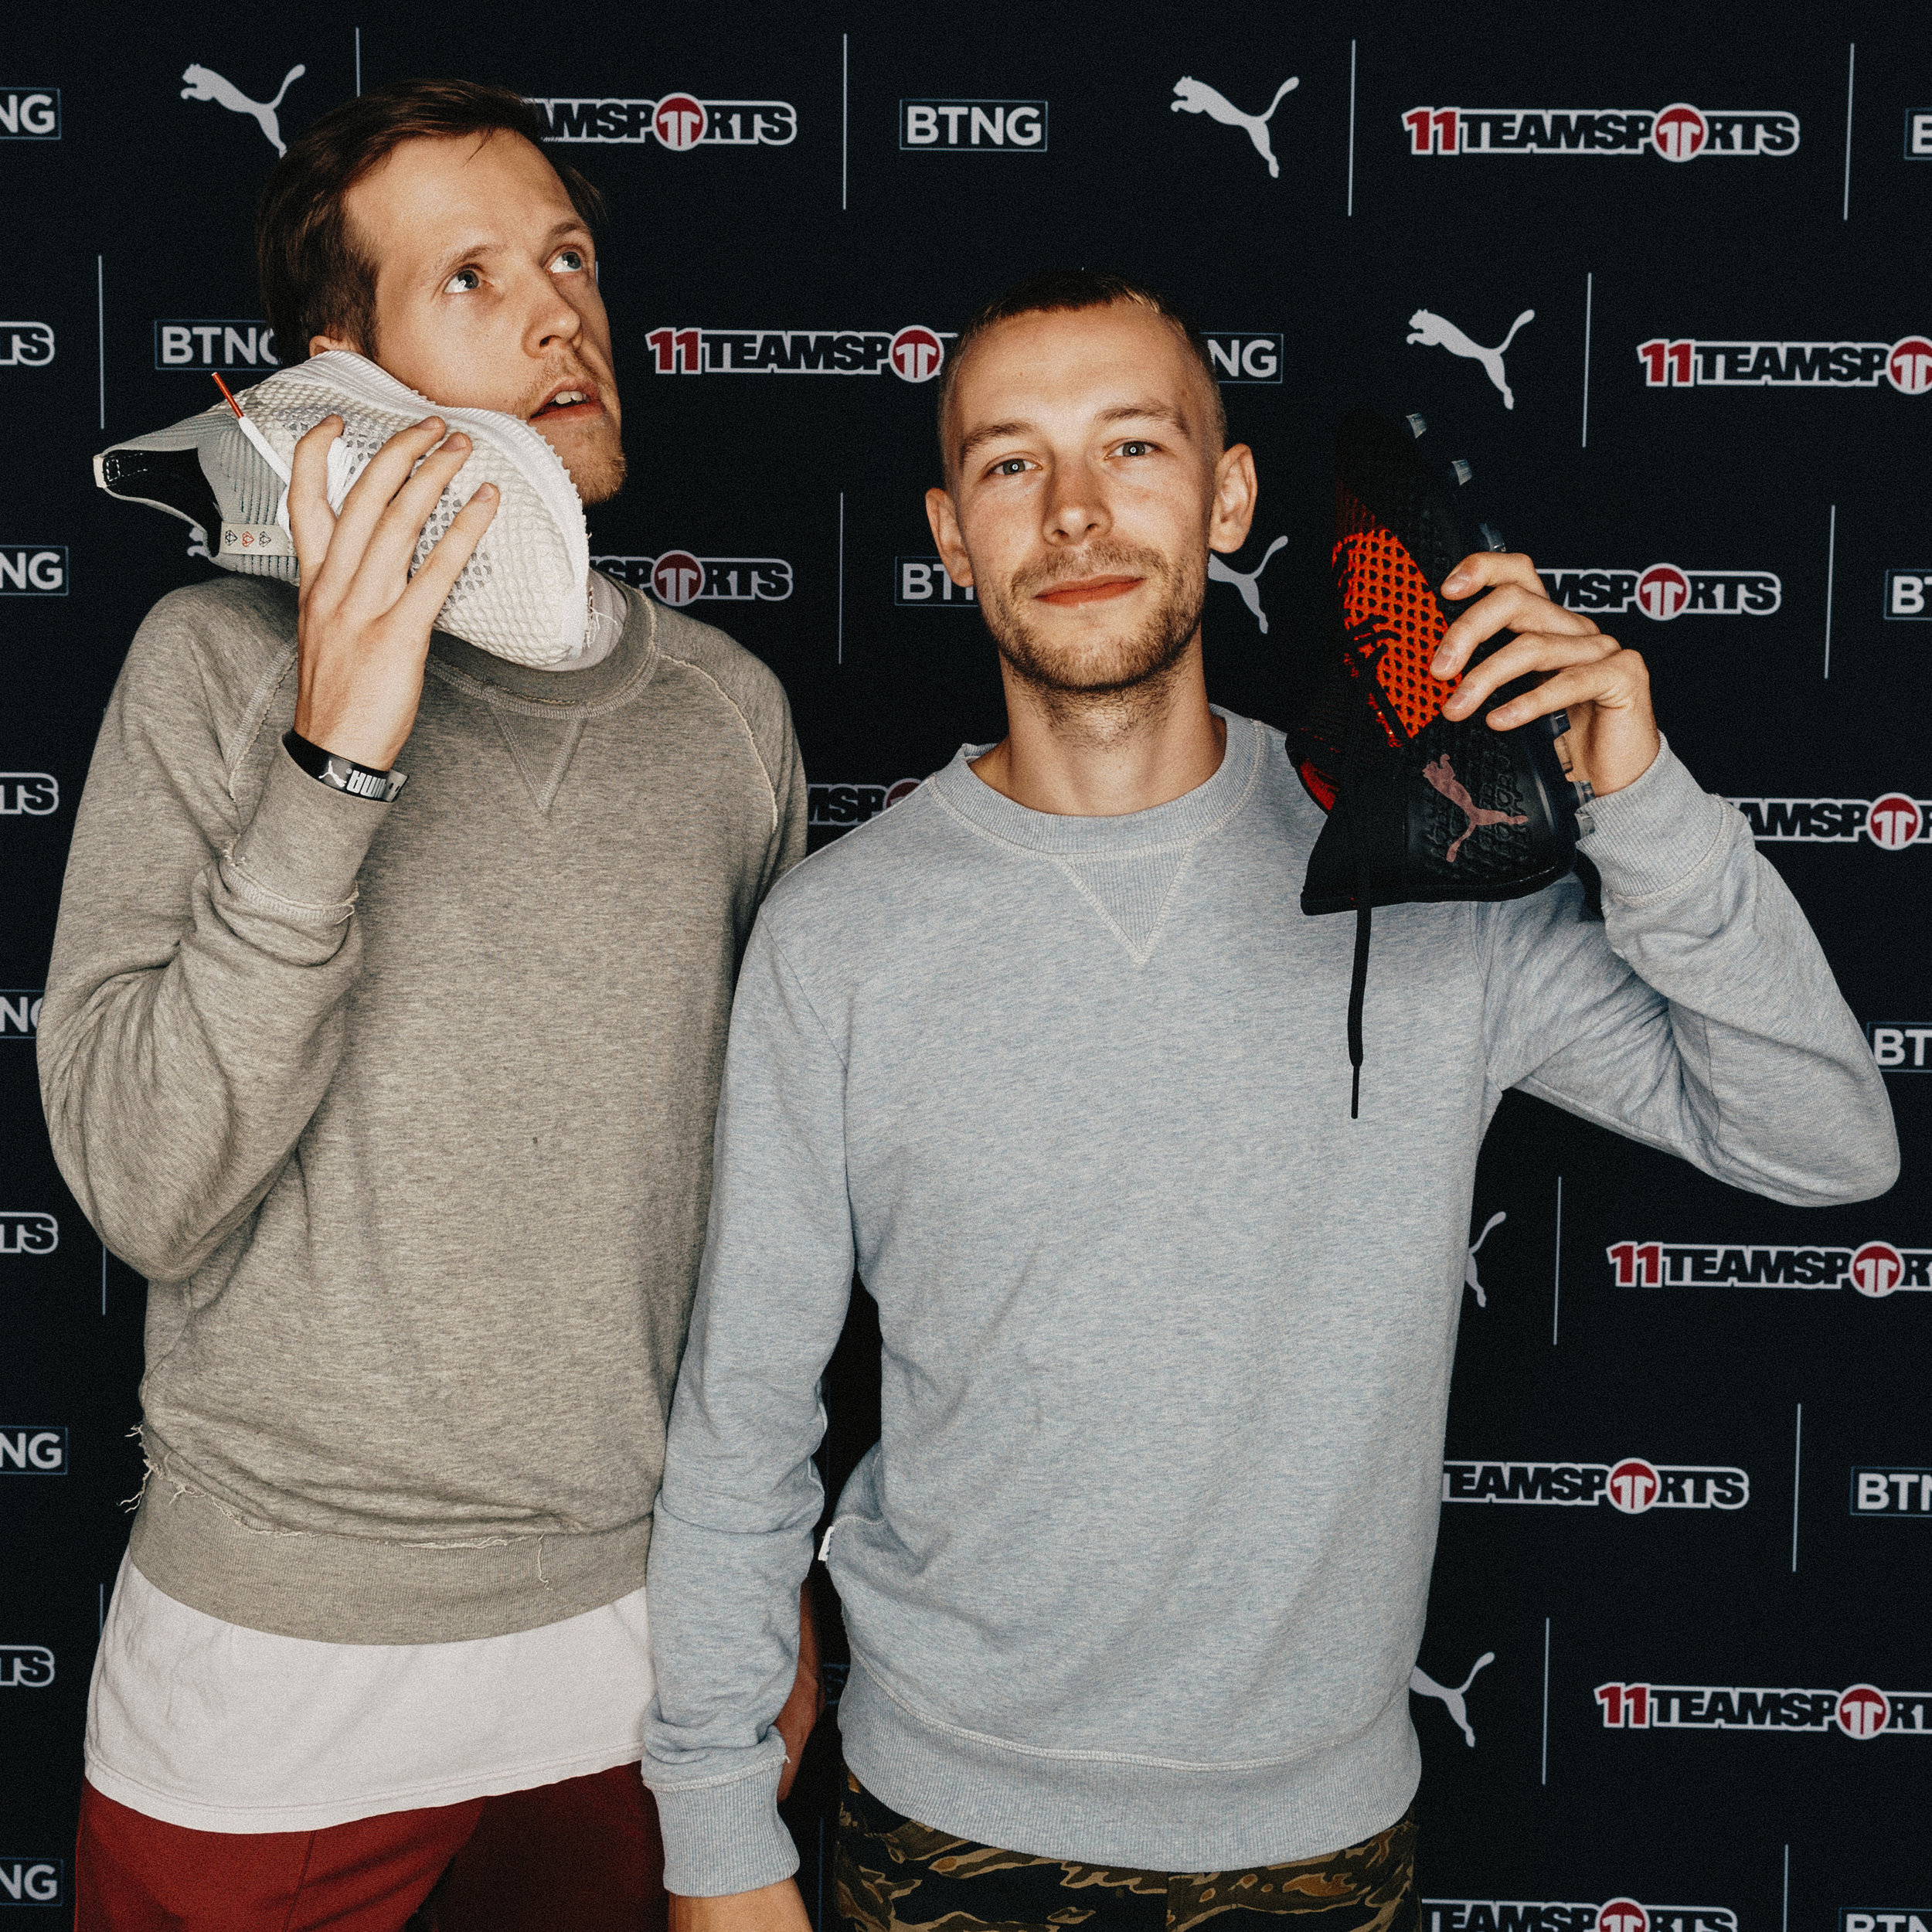 PUMA-BTNG_PhotoBooth-157 Kopie.jpg